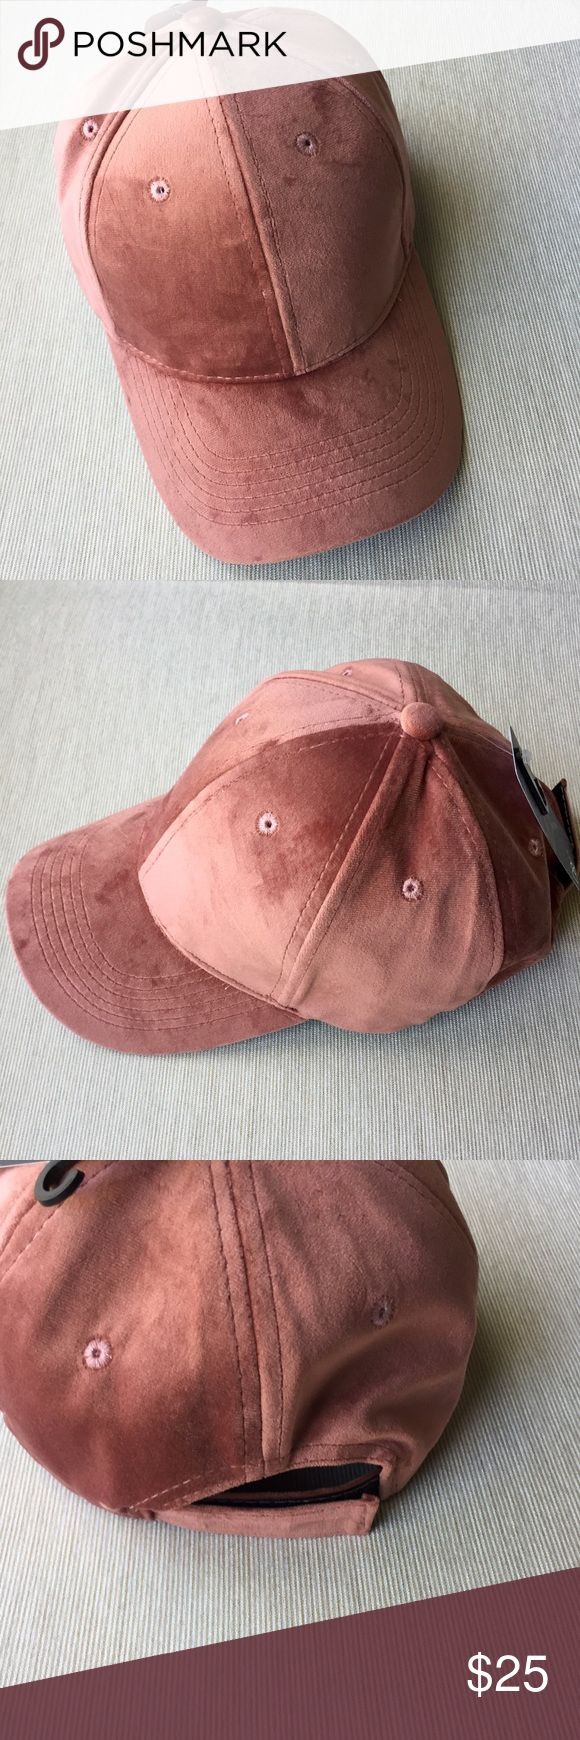 D&Y pink velvet baseball hat cap David and young pink velvet baseball hat cap. Brand new. Very cute with quality construction. Not Nasty Gal, but posted as such for exposure. Price is firm. Please feel free to ask questions. Thank you. Nasty Gal Accessories Hats